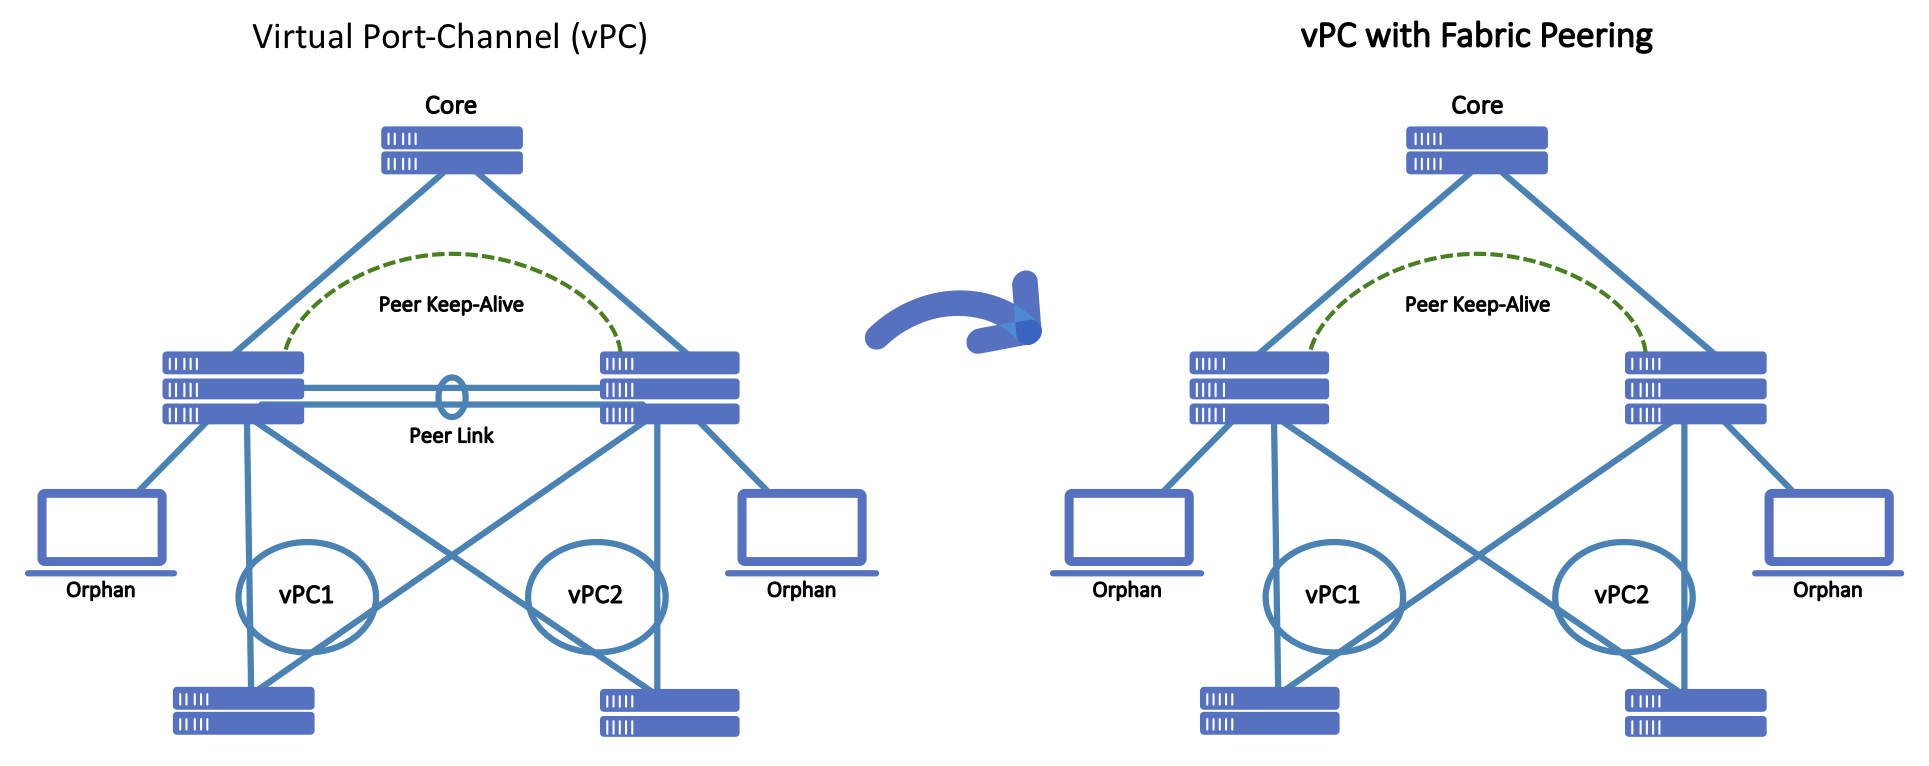 vPC and vPC with Fabric Peering